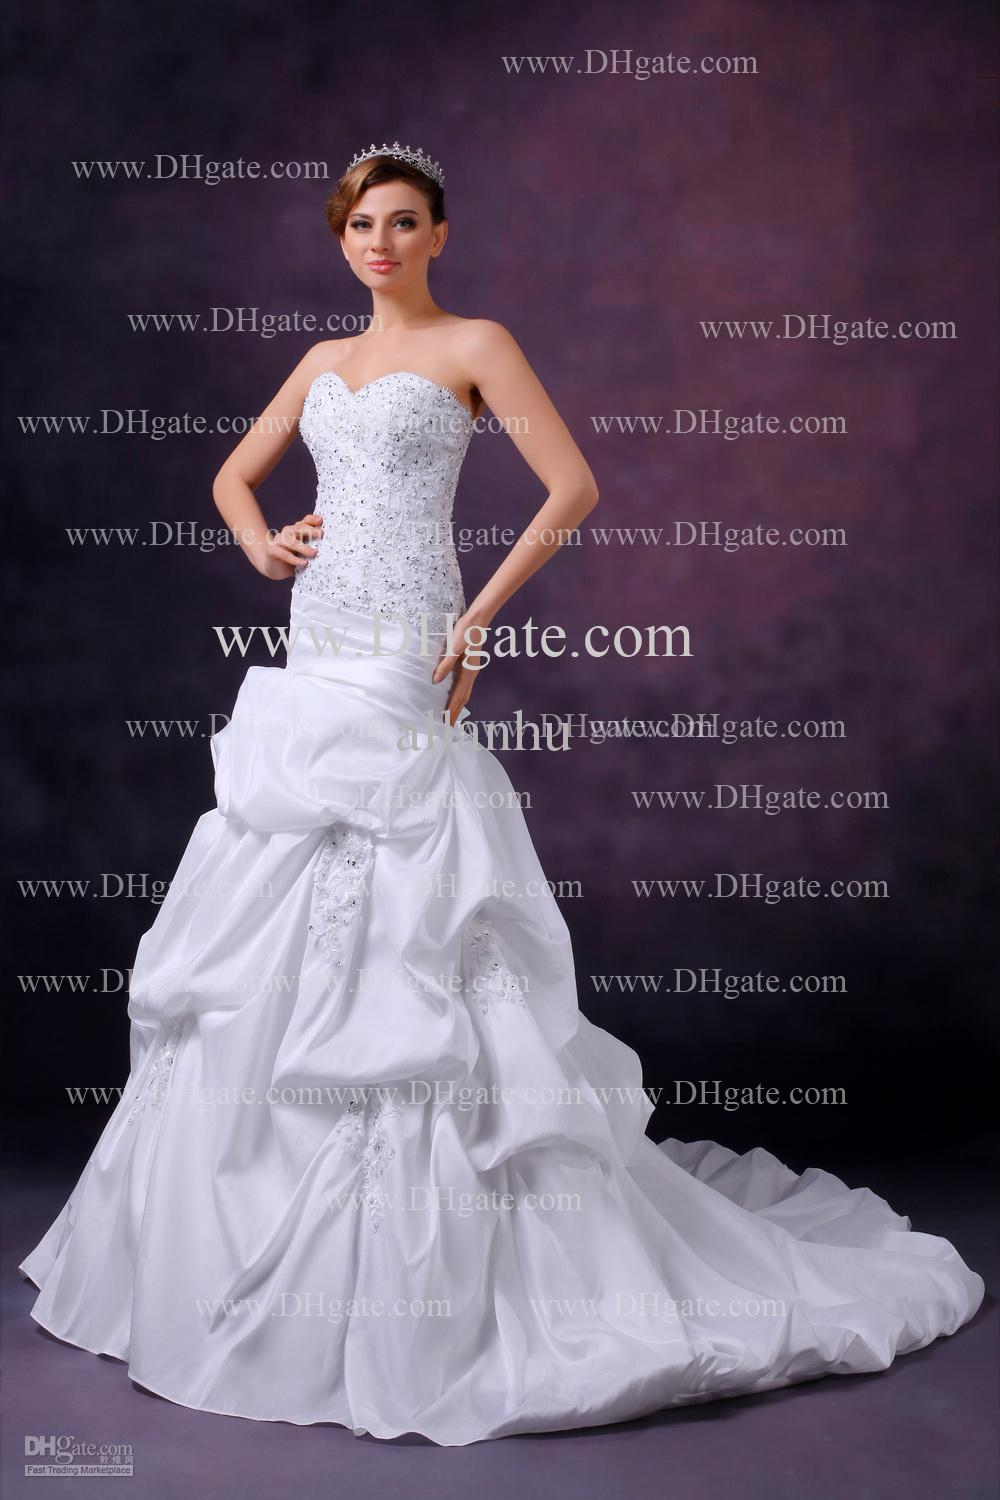 2014 New Amazing Elegant Sexy Sweetheart Bridal Gown With Applique Beads Ruffles A-line Satin Wedding Dress DHgate0865